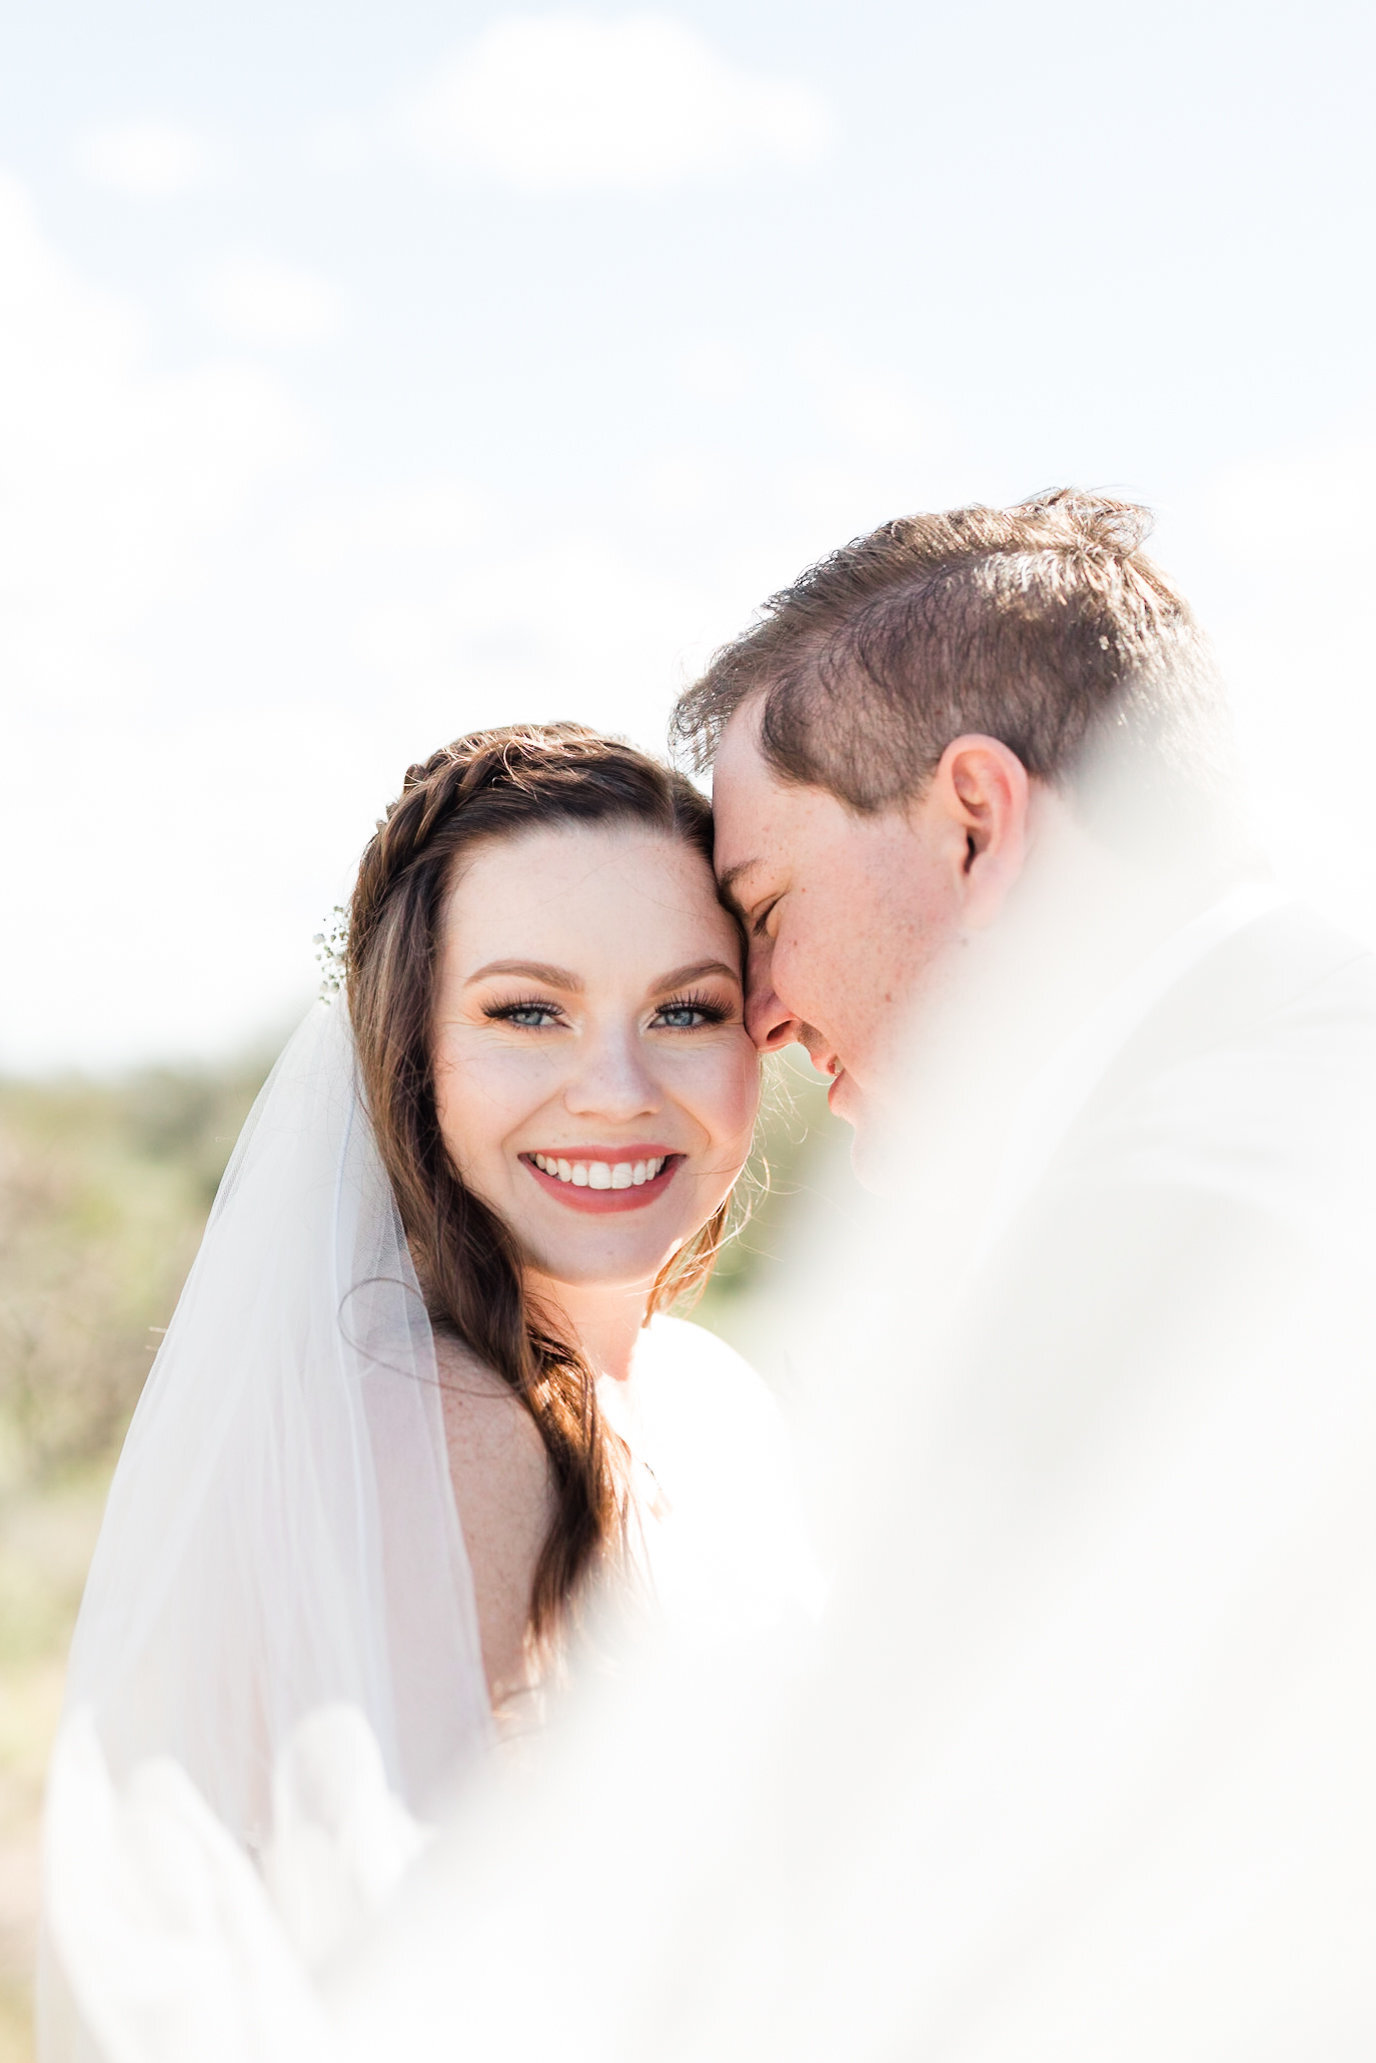 A swooping veil that leads to a bride smiling at the camera